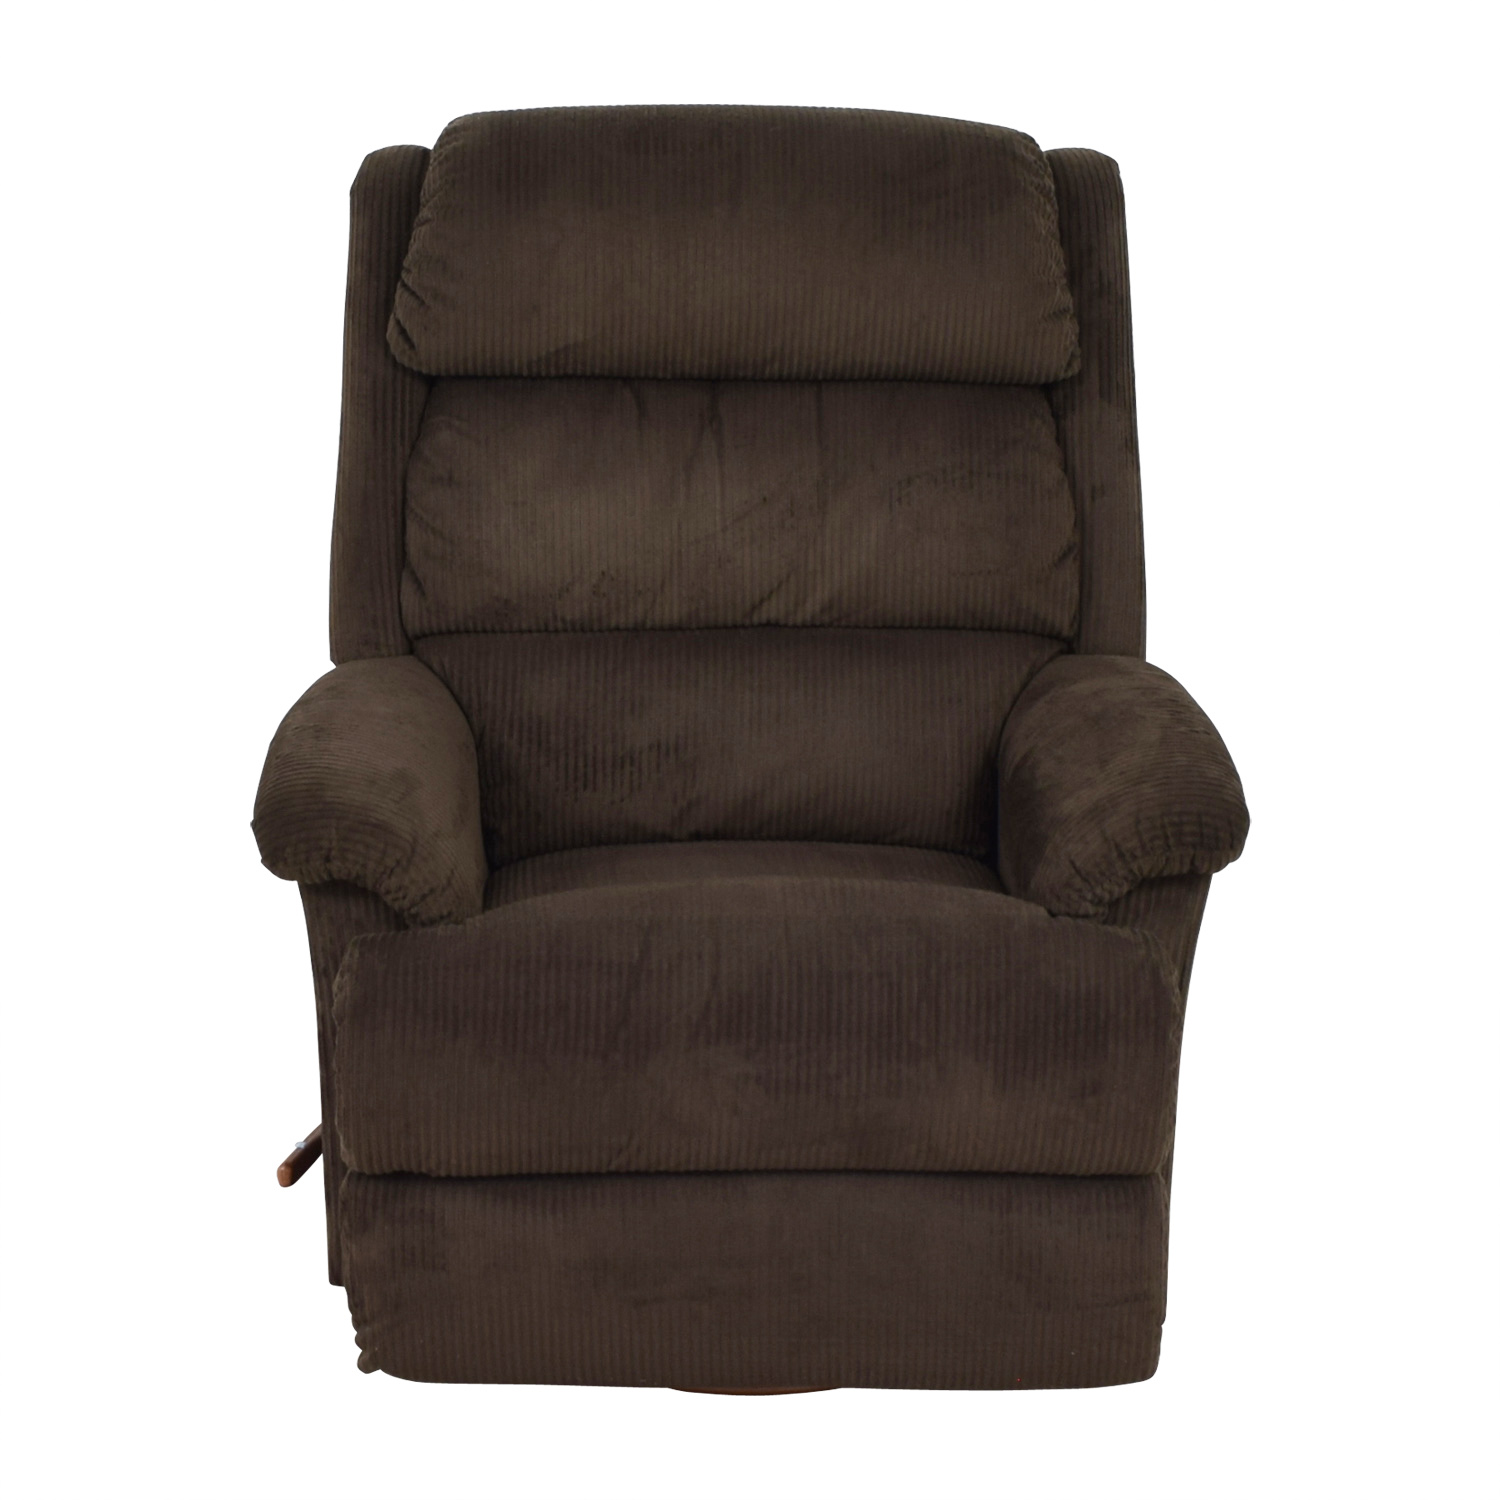 buy Lay-Z-Boy Brown Recliner Lay-Z-Boy Recliners